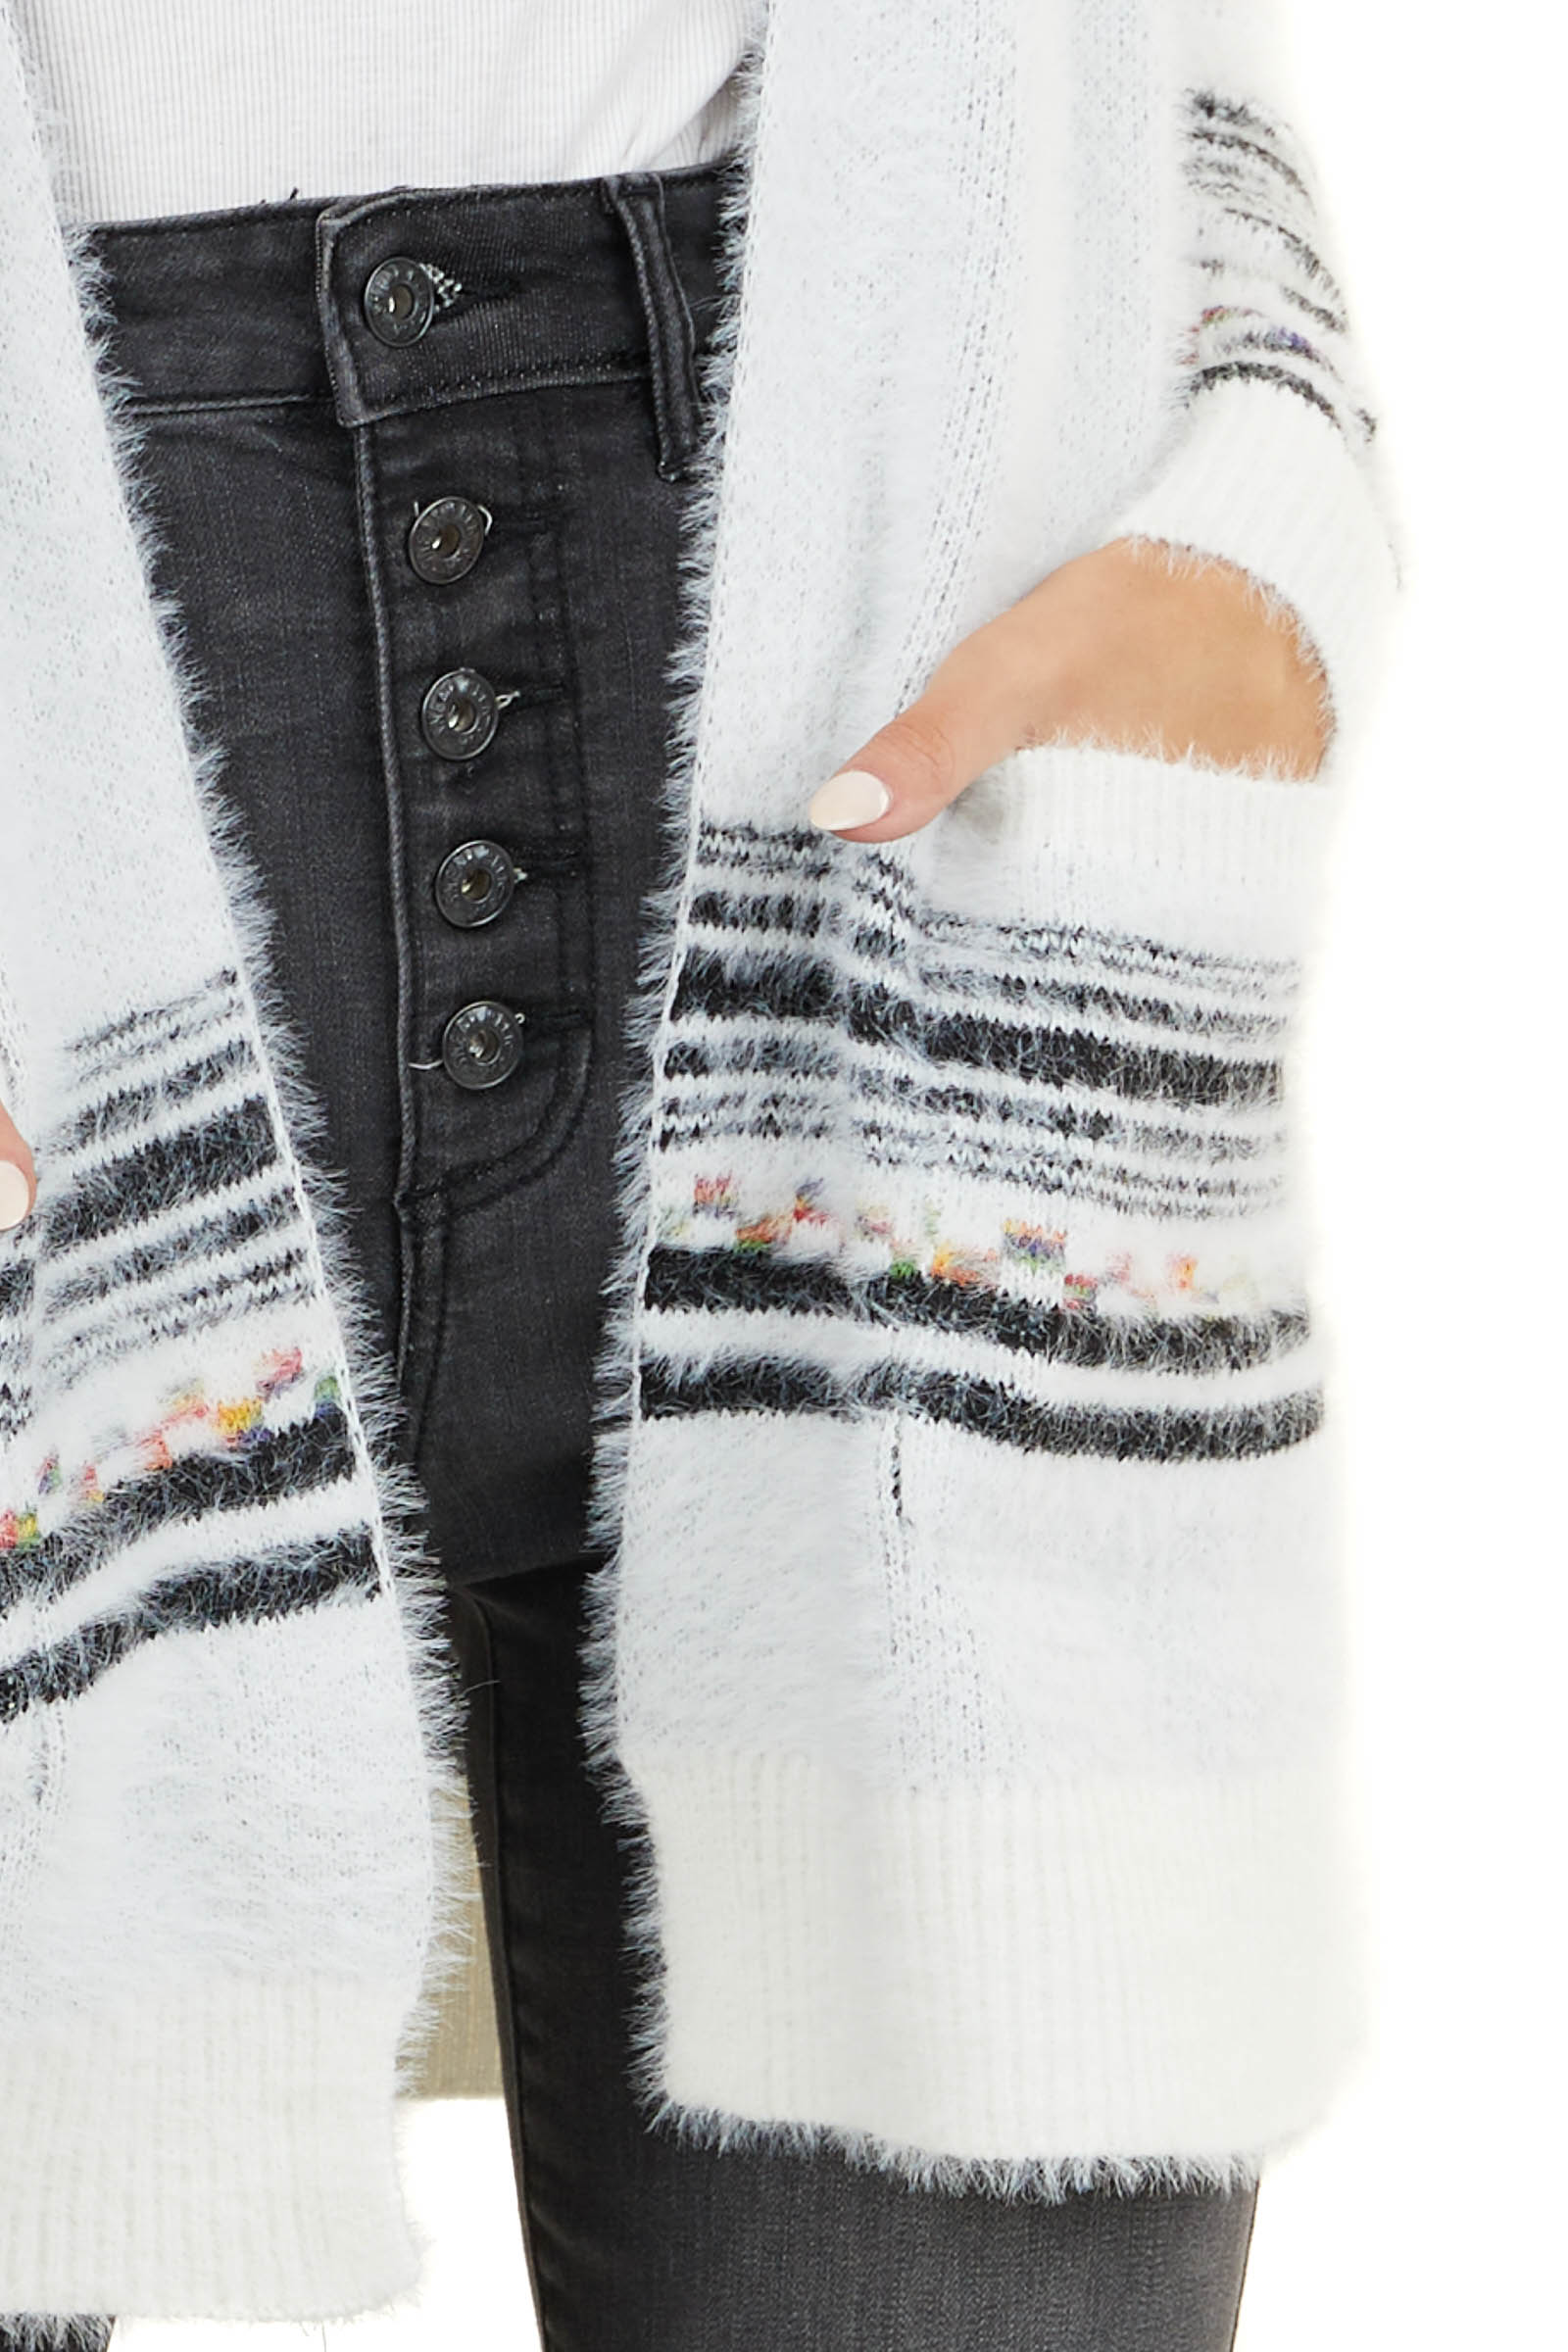 Off White and Black Printed Cardigan with Front Pockets